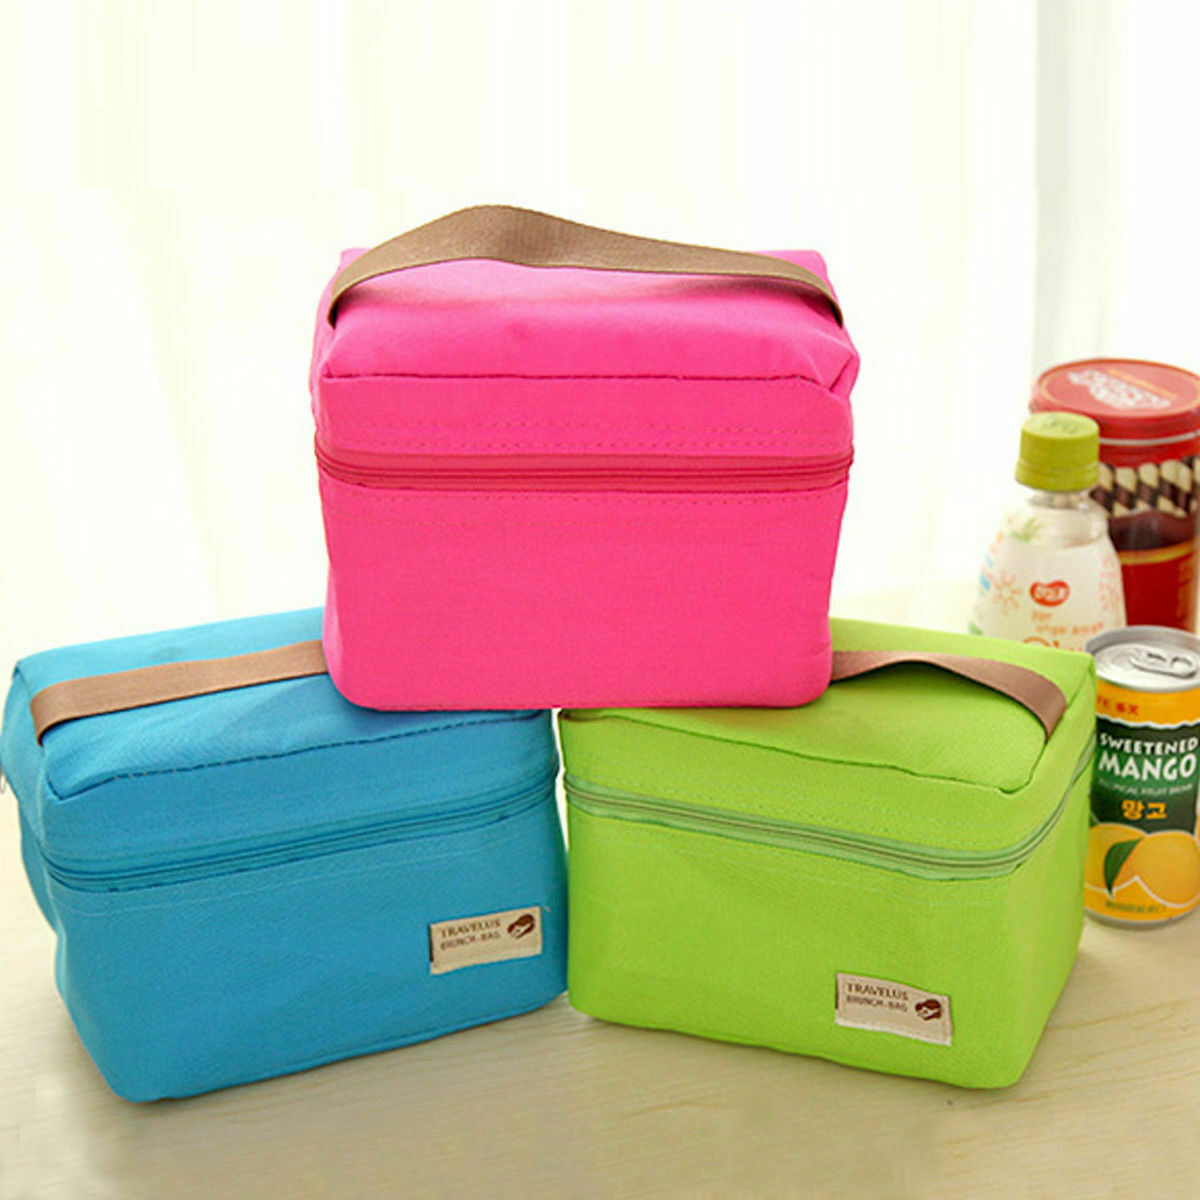 Portable Thermal Insulated Lunch Bag Box Storage Bag Waterproof Picnic Carry Tote Adults Women Girls